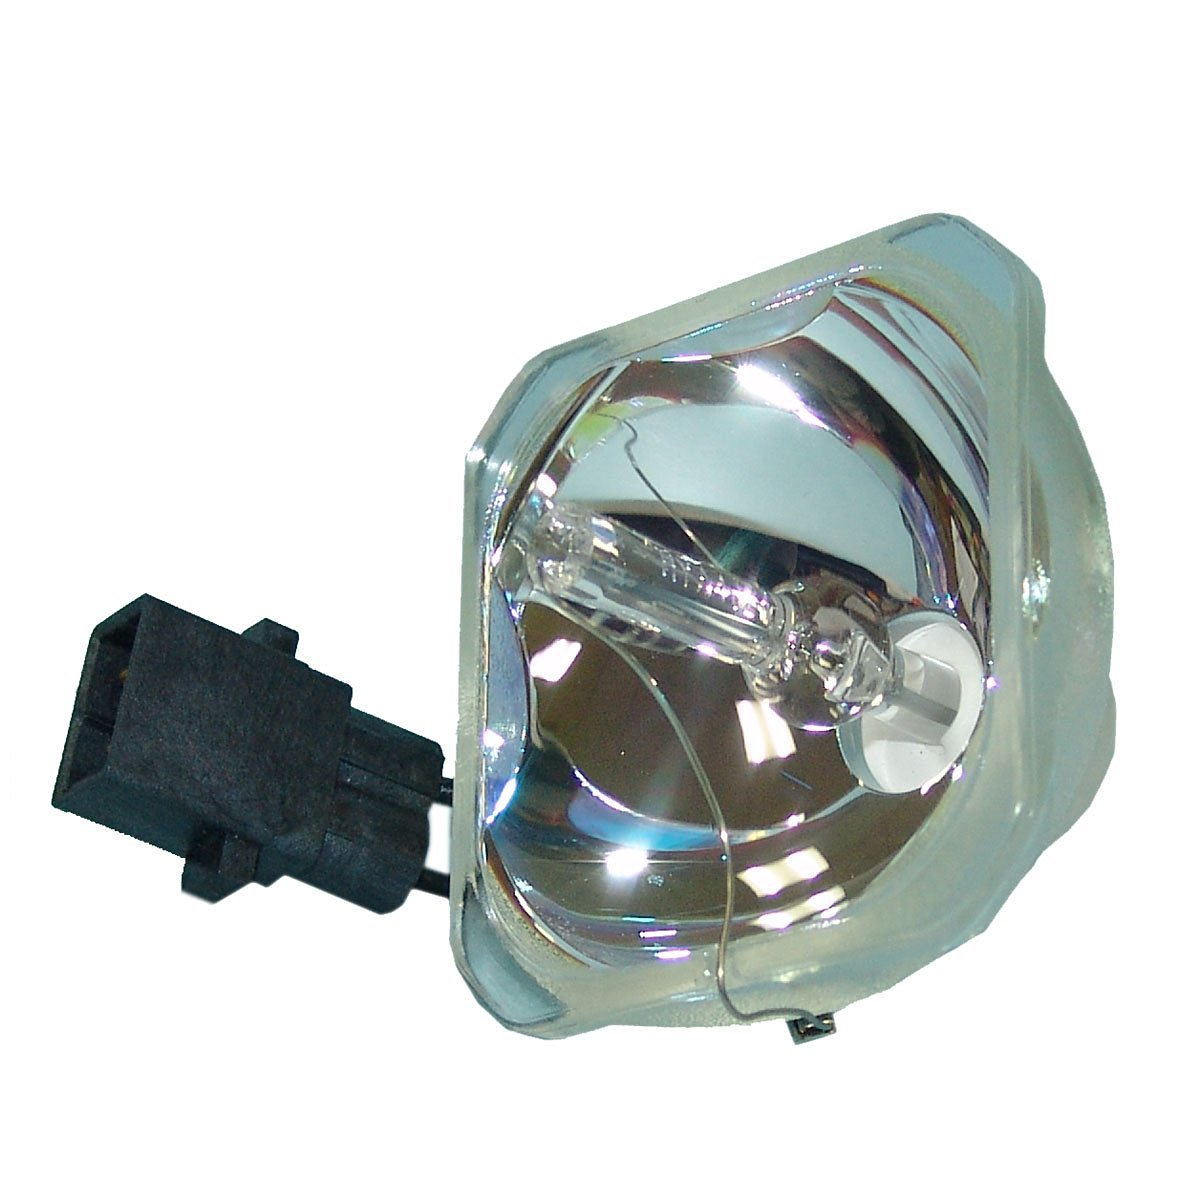 Get Quotations · Powerlite Home Cinema 8350 Epson Projector Lamp  Replacement. Projector Lamp Assembly With High Quality Original